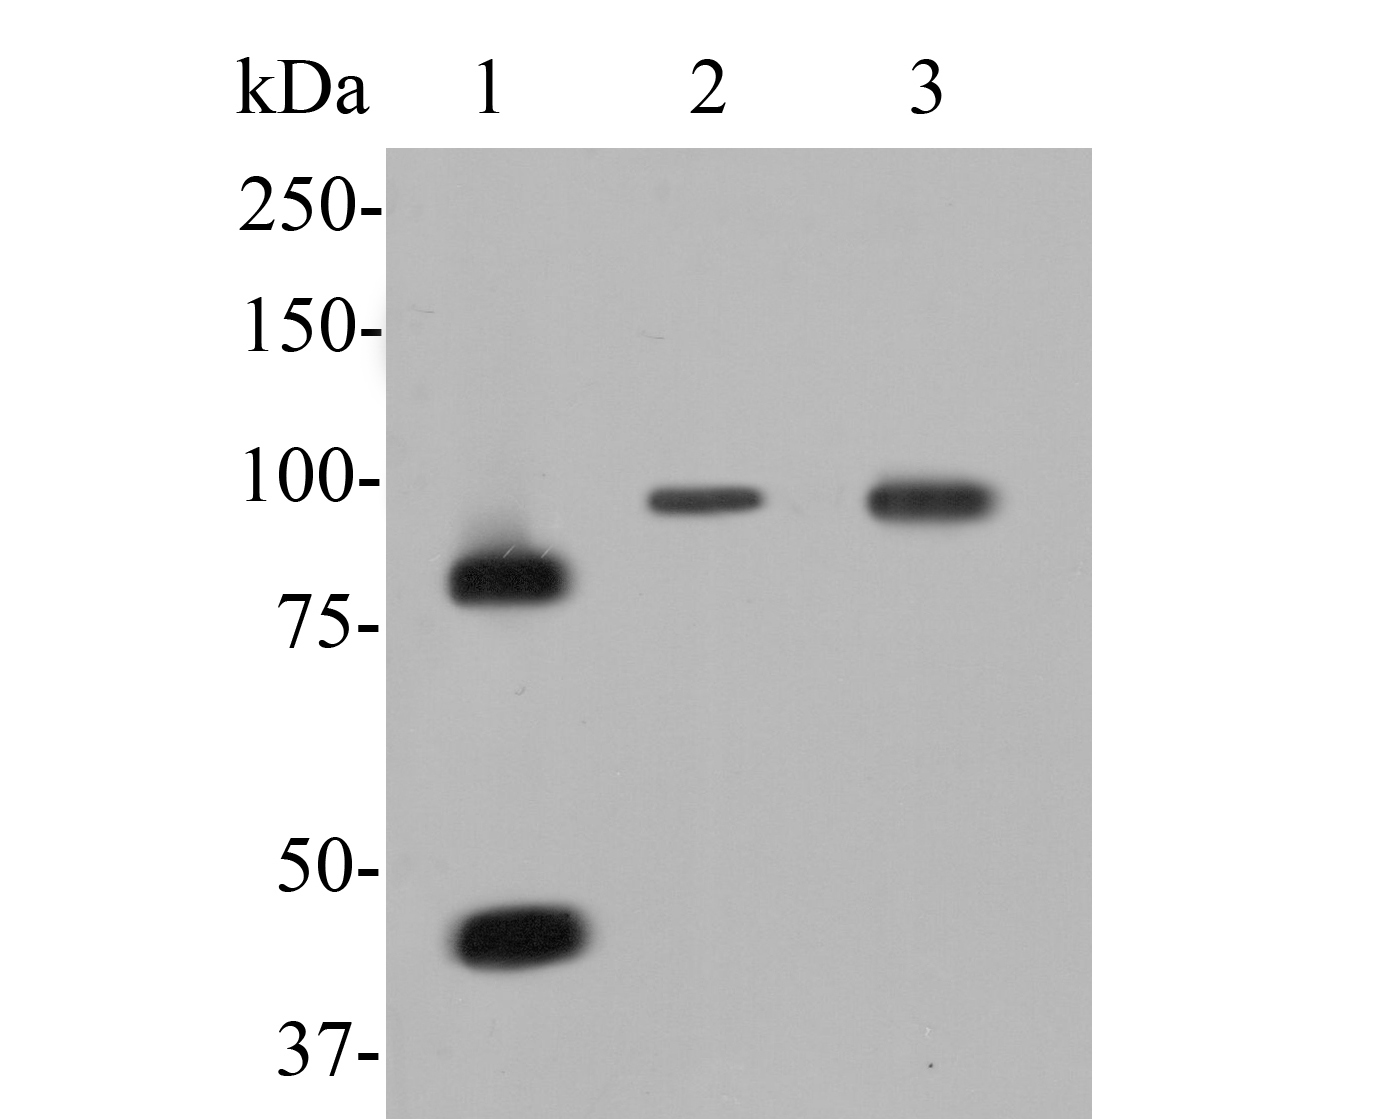 Western blot analysis of MCM7 on different lysates. Proteins were transferred to a PVDF membrane and blocked with 5% BSA in PBS for 1 hour at room temperature. The primary antibody (ER1902-60, 1/500) was used in 5% BSA at room temperature for 2 hours. Goat Anti-Rabbit IgG - HRP Secondary Antibody (HA1001) at 1:5,000 dilution was used for 1 hour at room temperature.<br />  Positive control: <br />  Lane 1: MCF-7 cell lysate <br />  Lane 2: K562 cell lysate<br />  Lane 3: Mouse colon tissue lysate